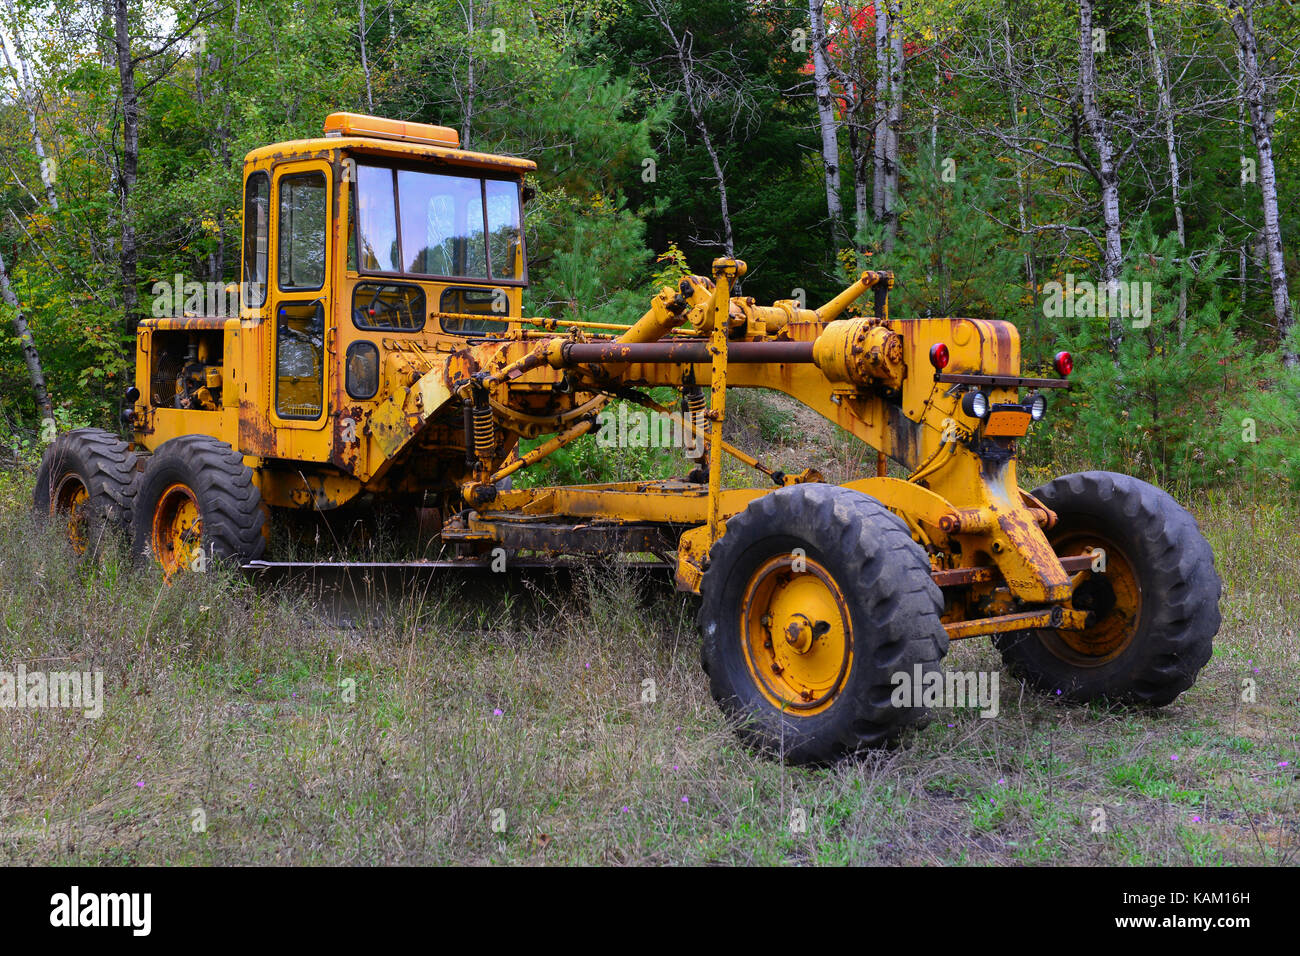 Rusty old road excavator grader parked in the Adirondack